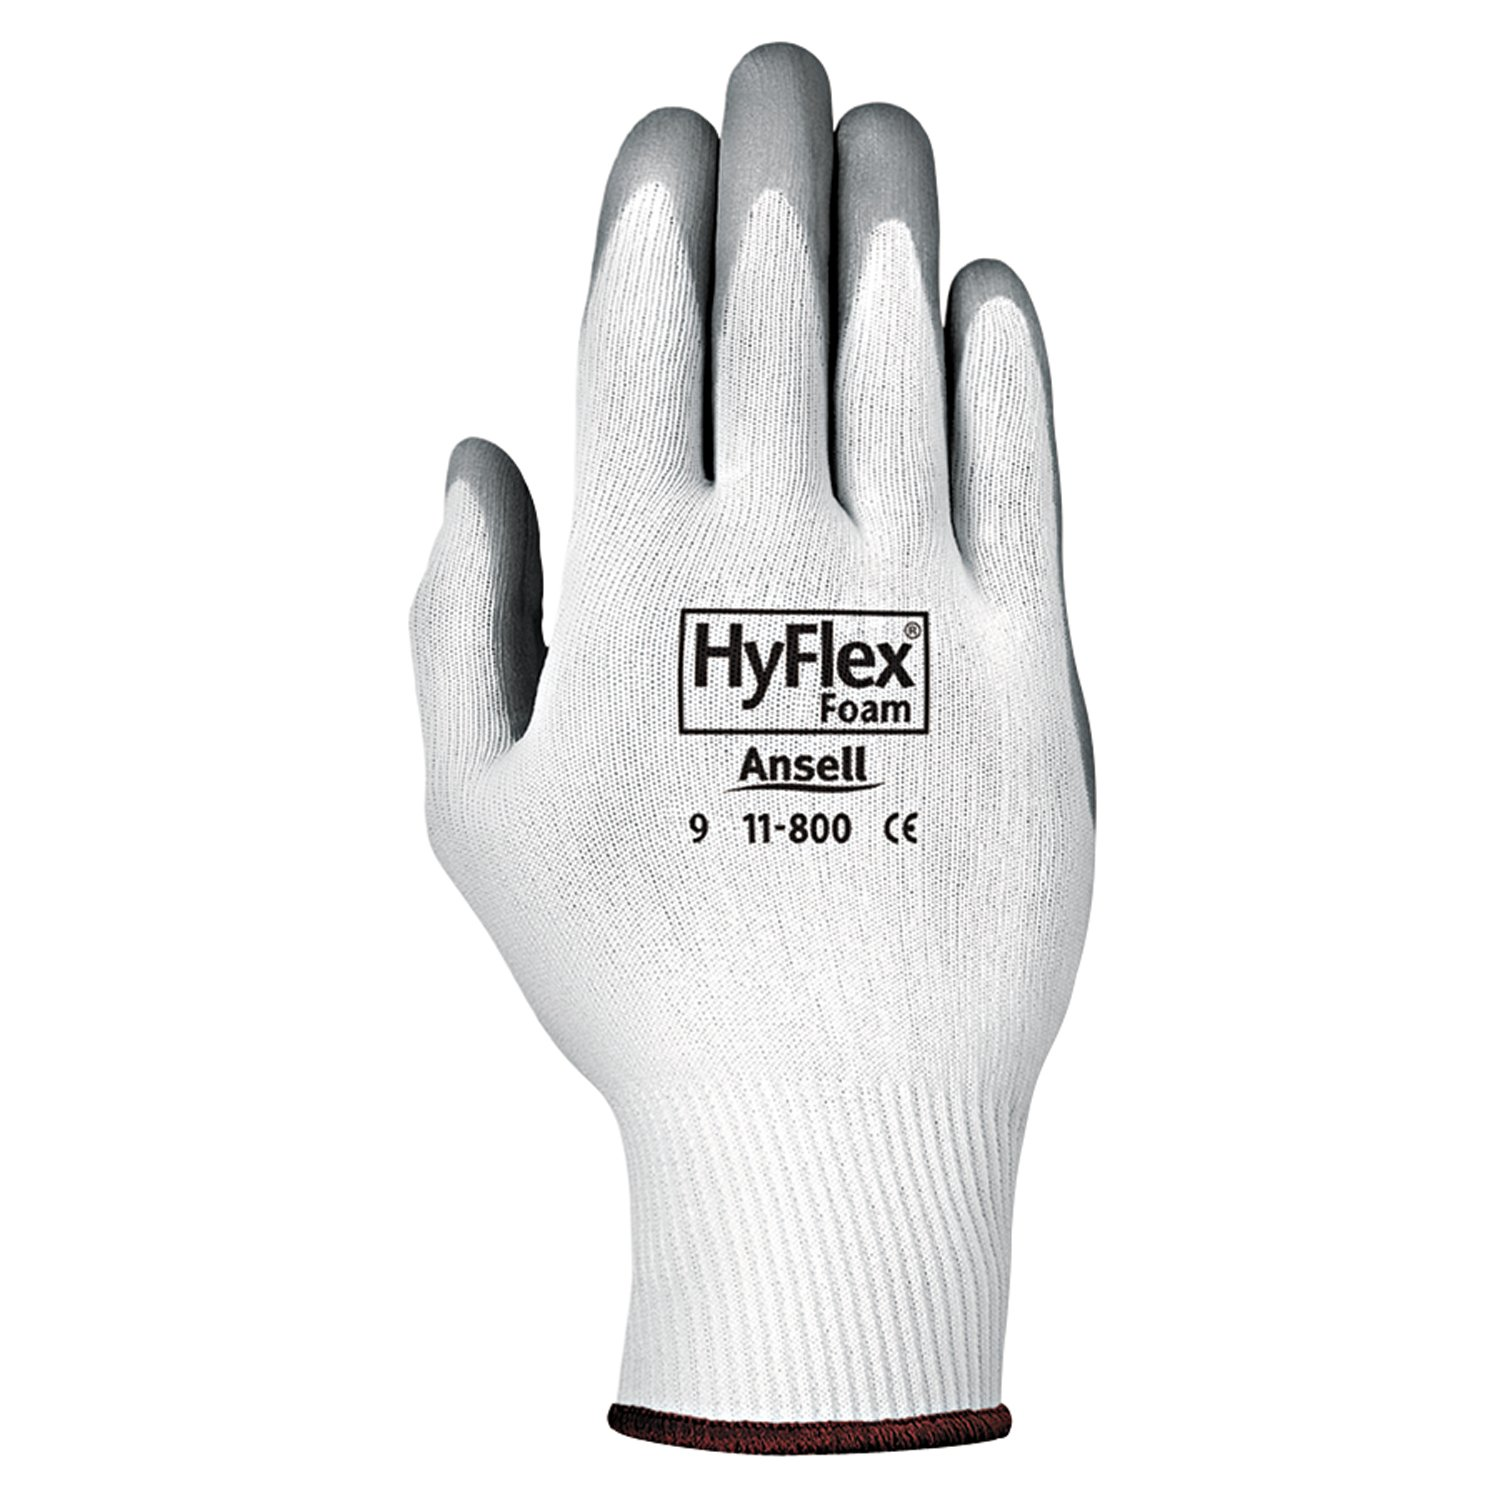 Ansell 11-800-8 HyFlex Foam Gloves, Size 8, White/Gray (Pack of 12) 012-11-800-8